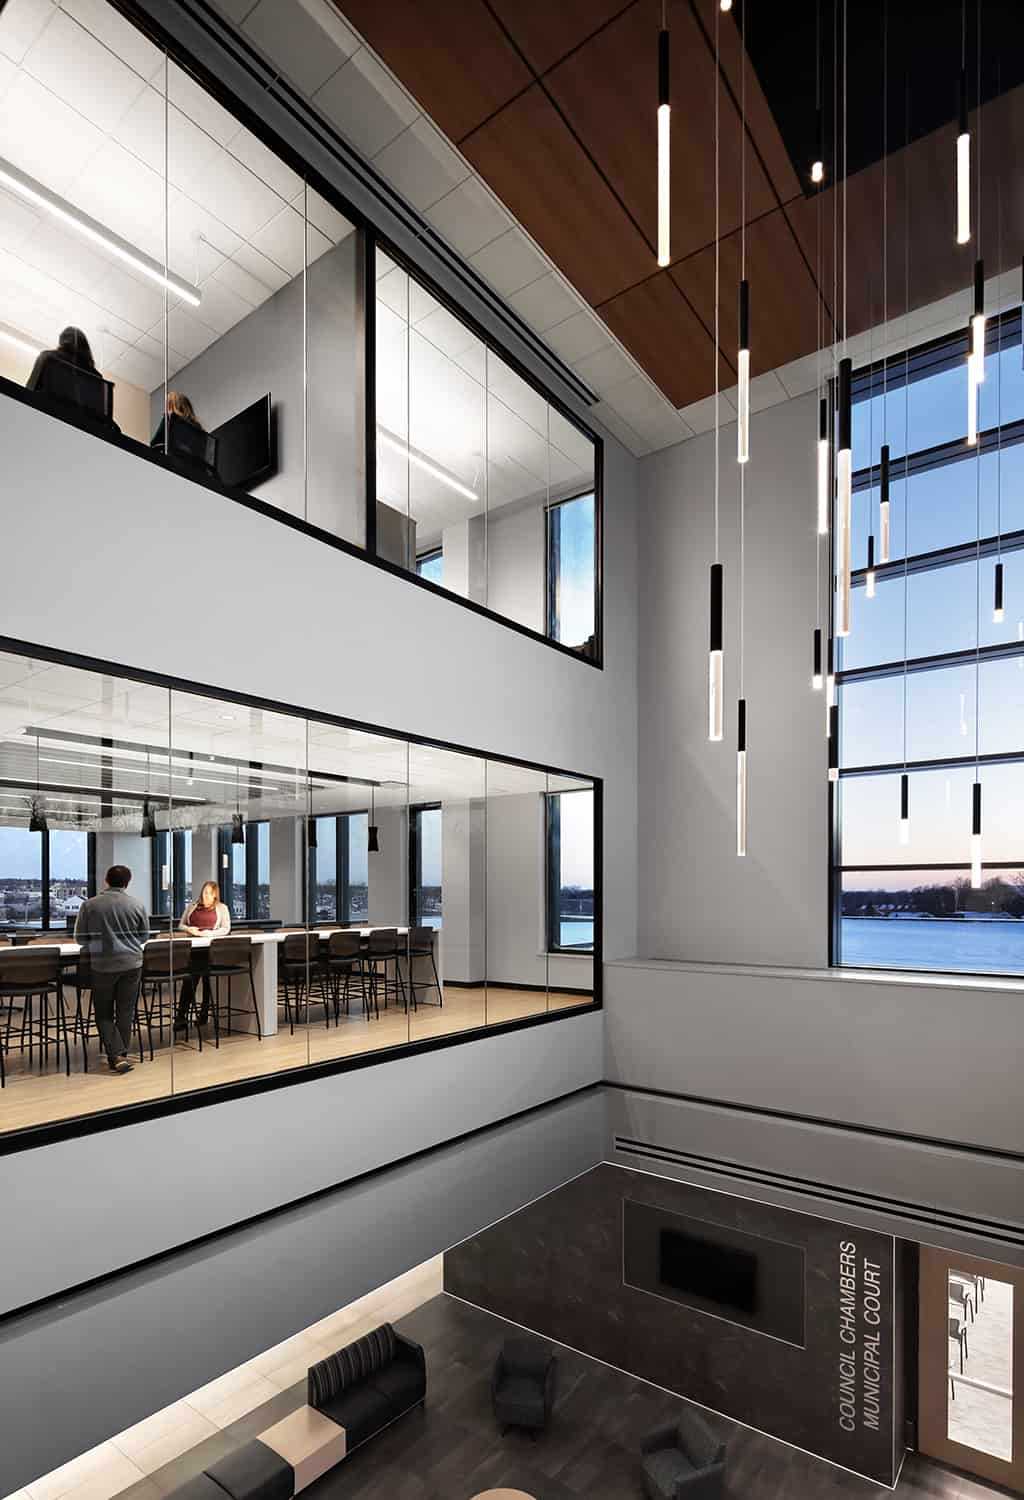 View from atrium into conference rooms and offices above the open space.